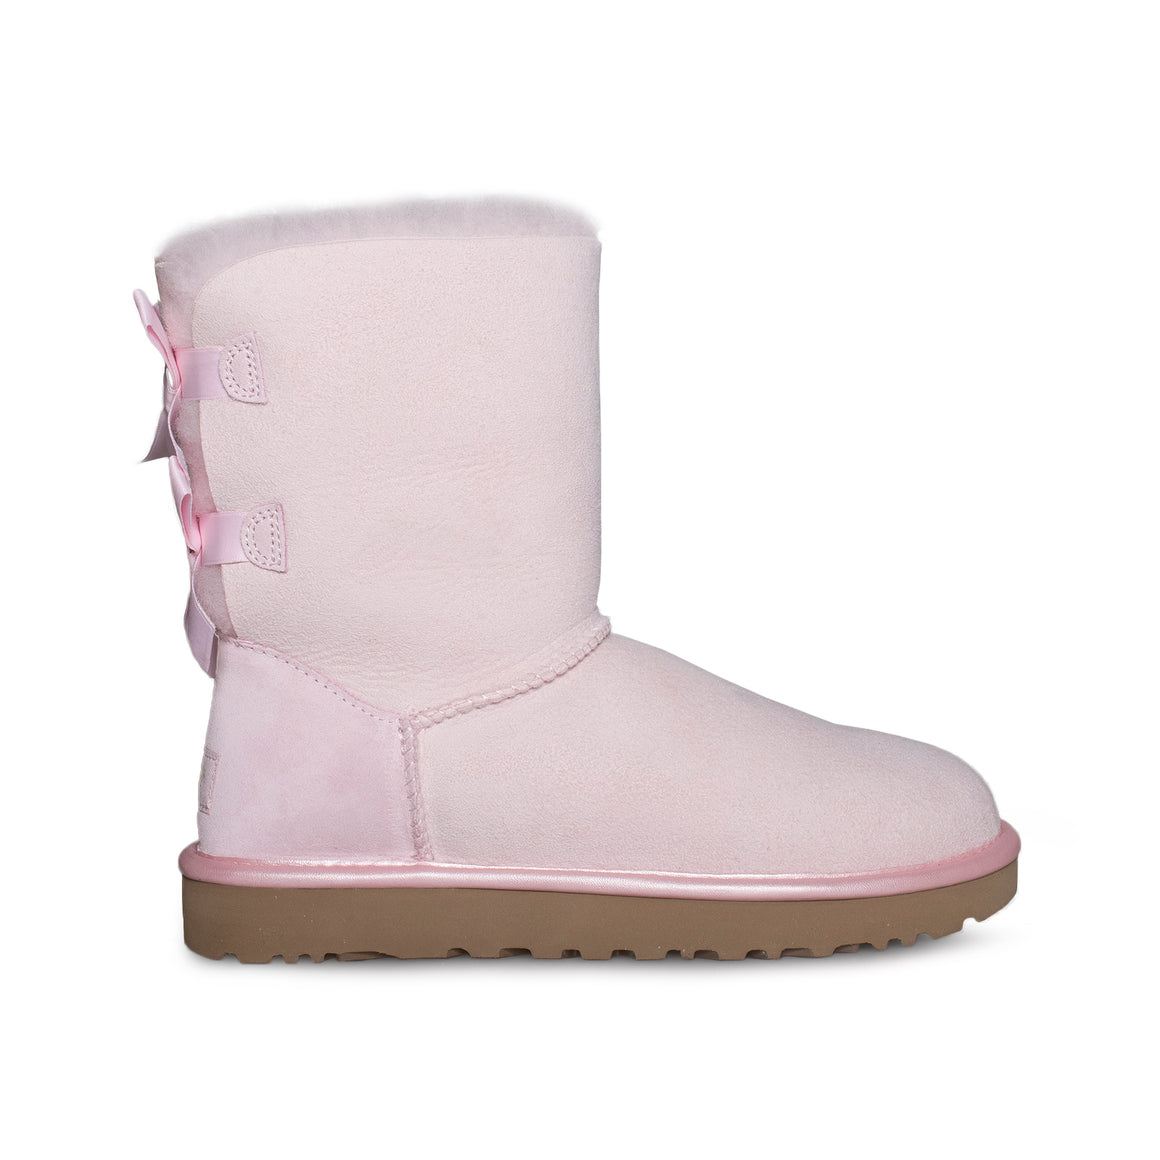 UGG Bailey Bow II Metallic Seashell Pink Boots - Women's